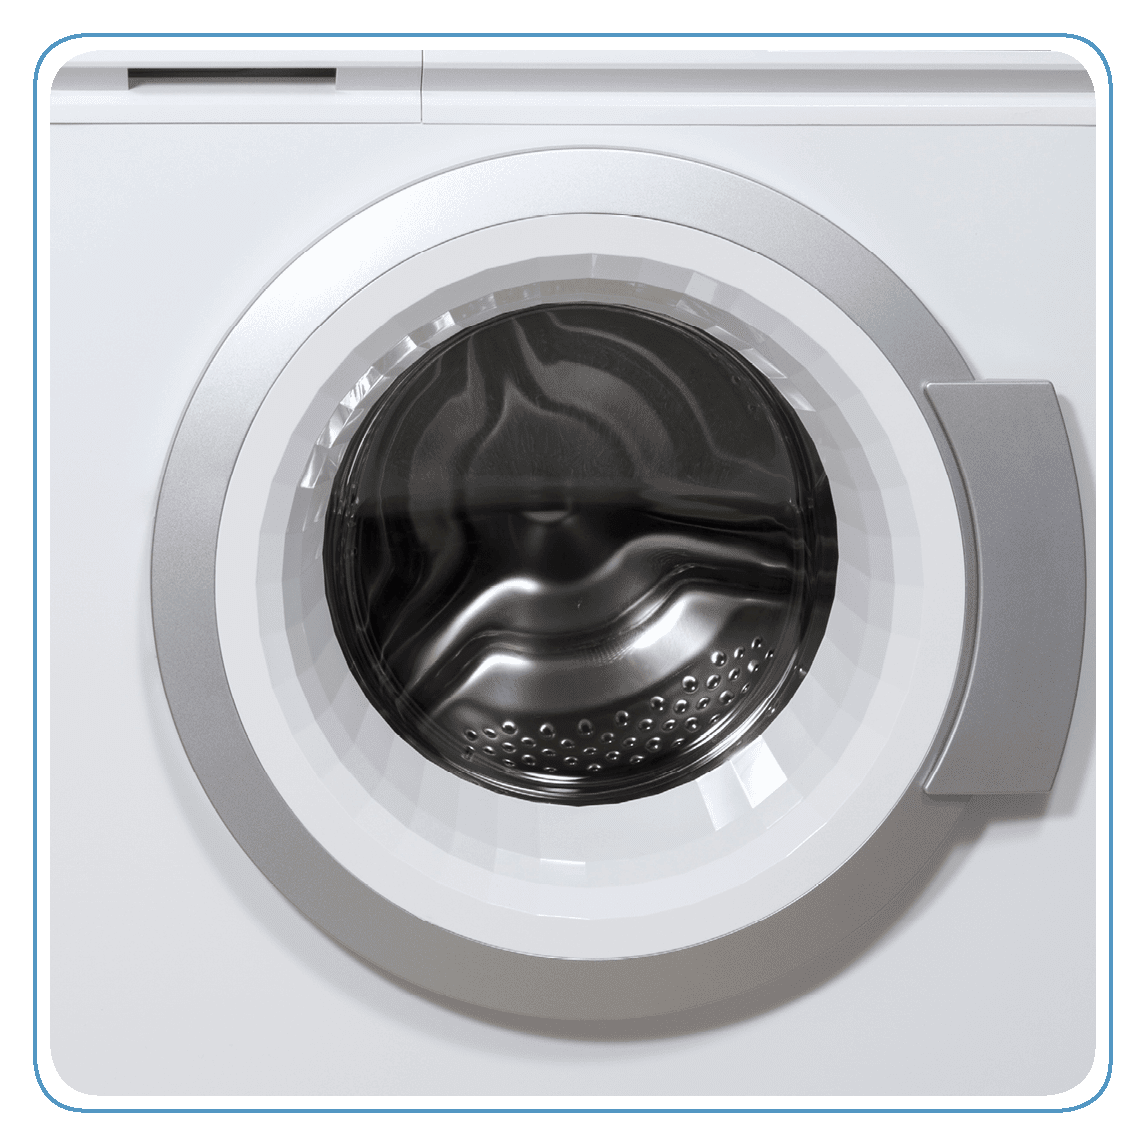 Laundries in Kitchens